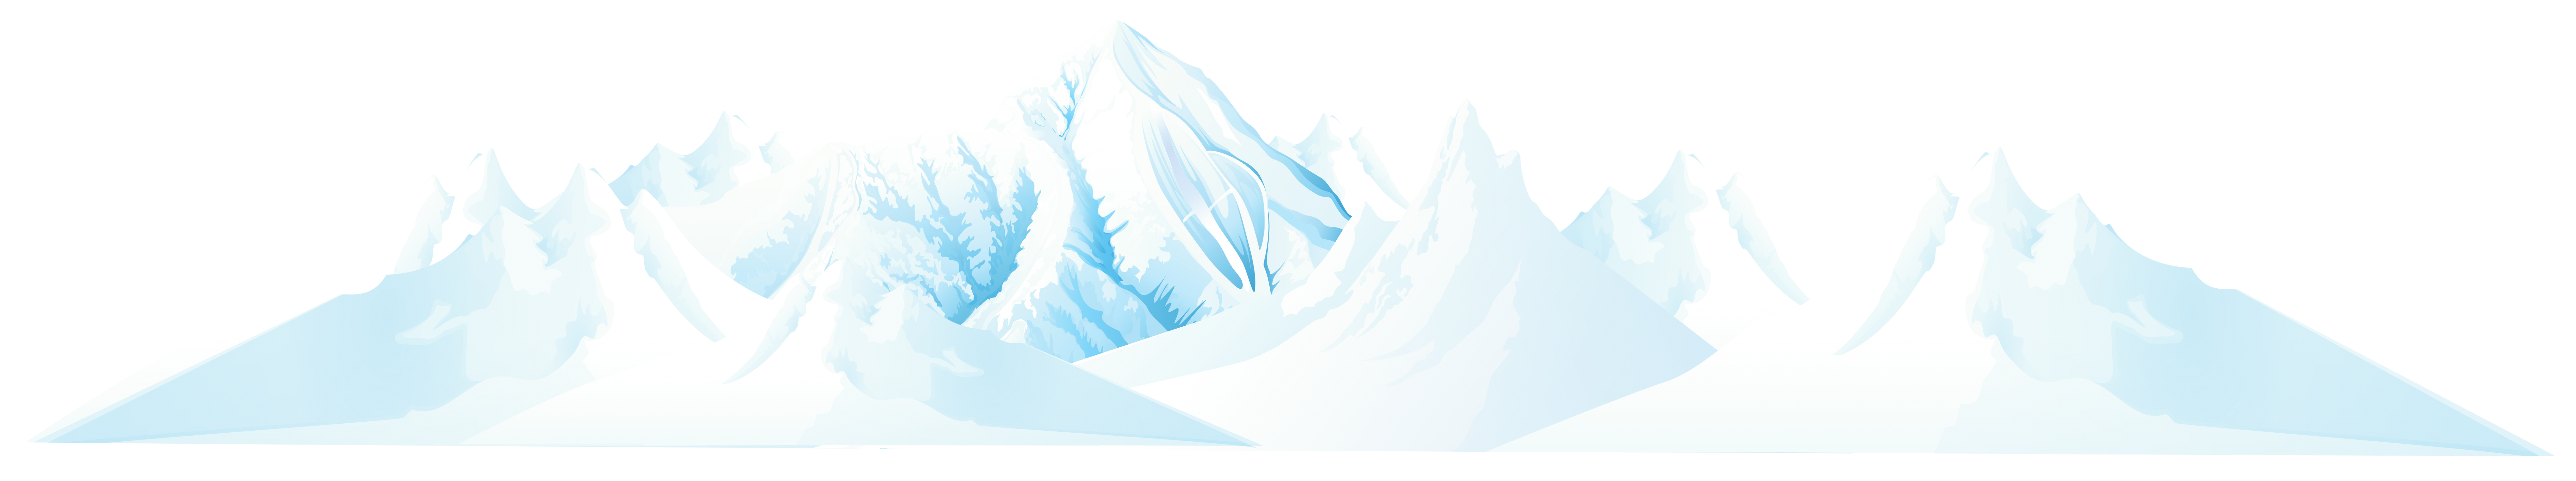 Winter png clip art. Iceberg clipart snow mountain clipart free